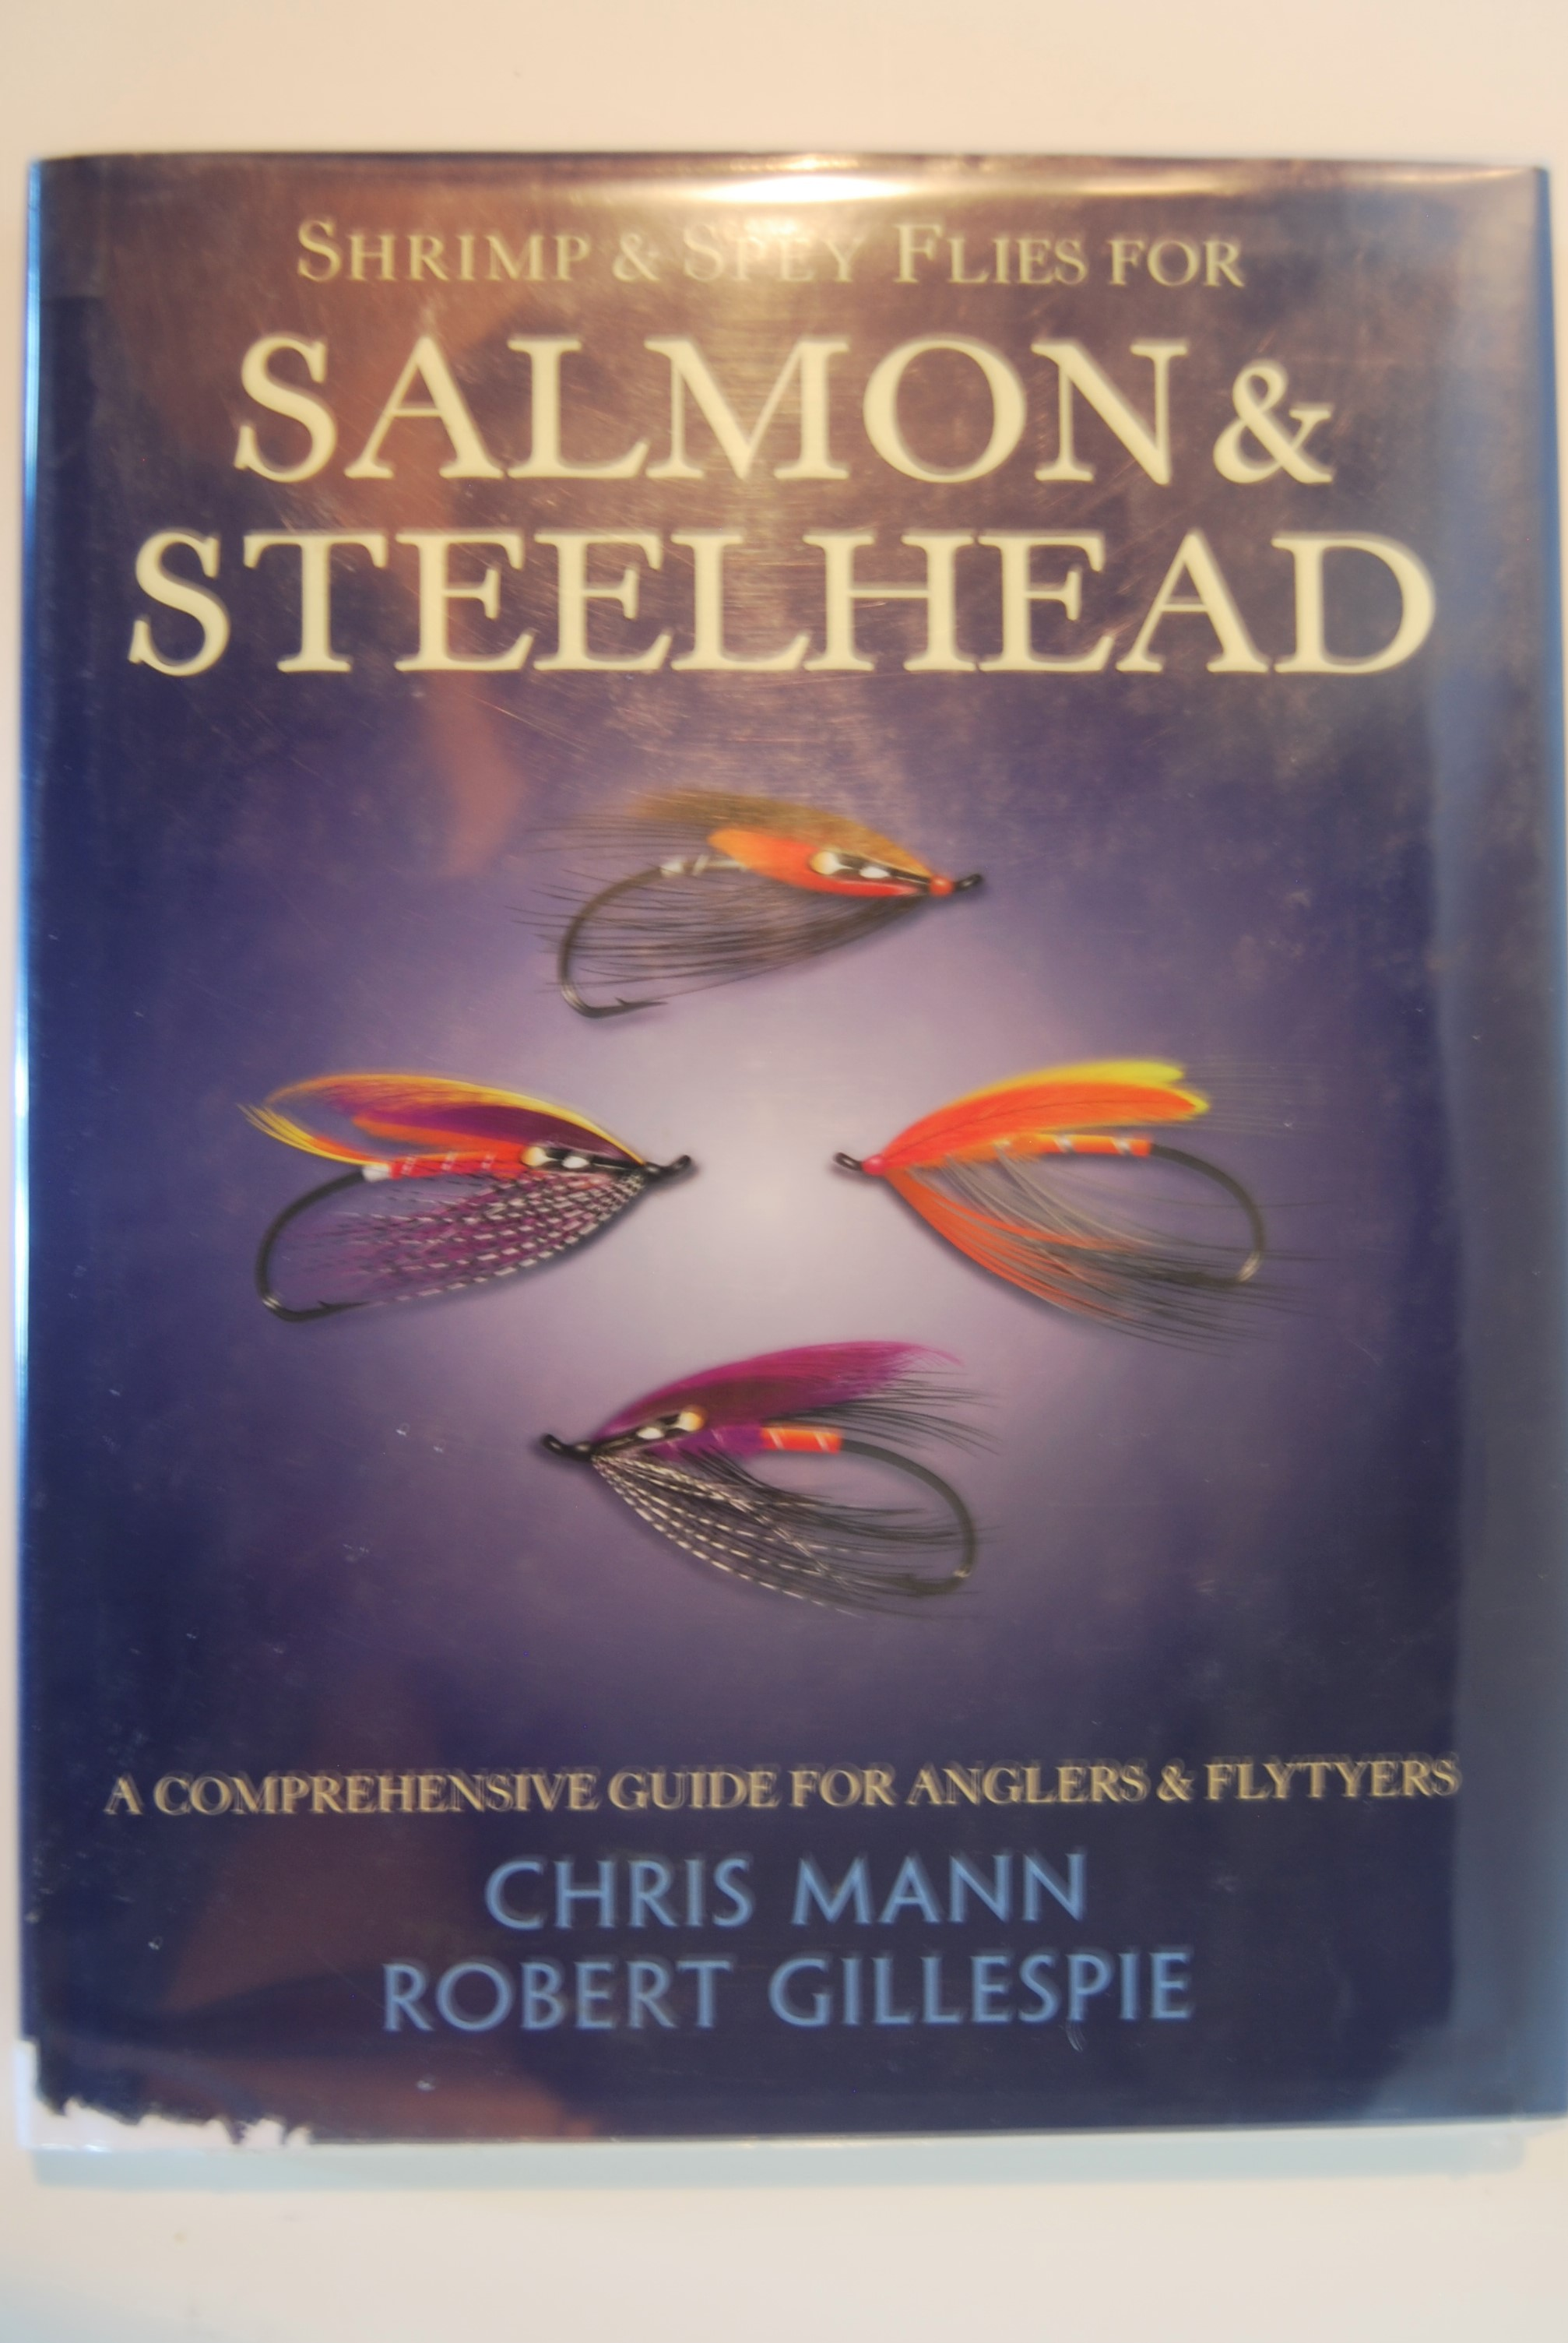 Image for SHRIMP AND SPEY FLIES FOR SALMON & STEELHEAD.  4to illus. by Chris Mann.  ISBN 0-8117-1428-4. Mechanicsburg: Stackpole Books. 222 p. 2001. 1st US Edition.